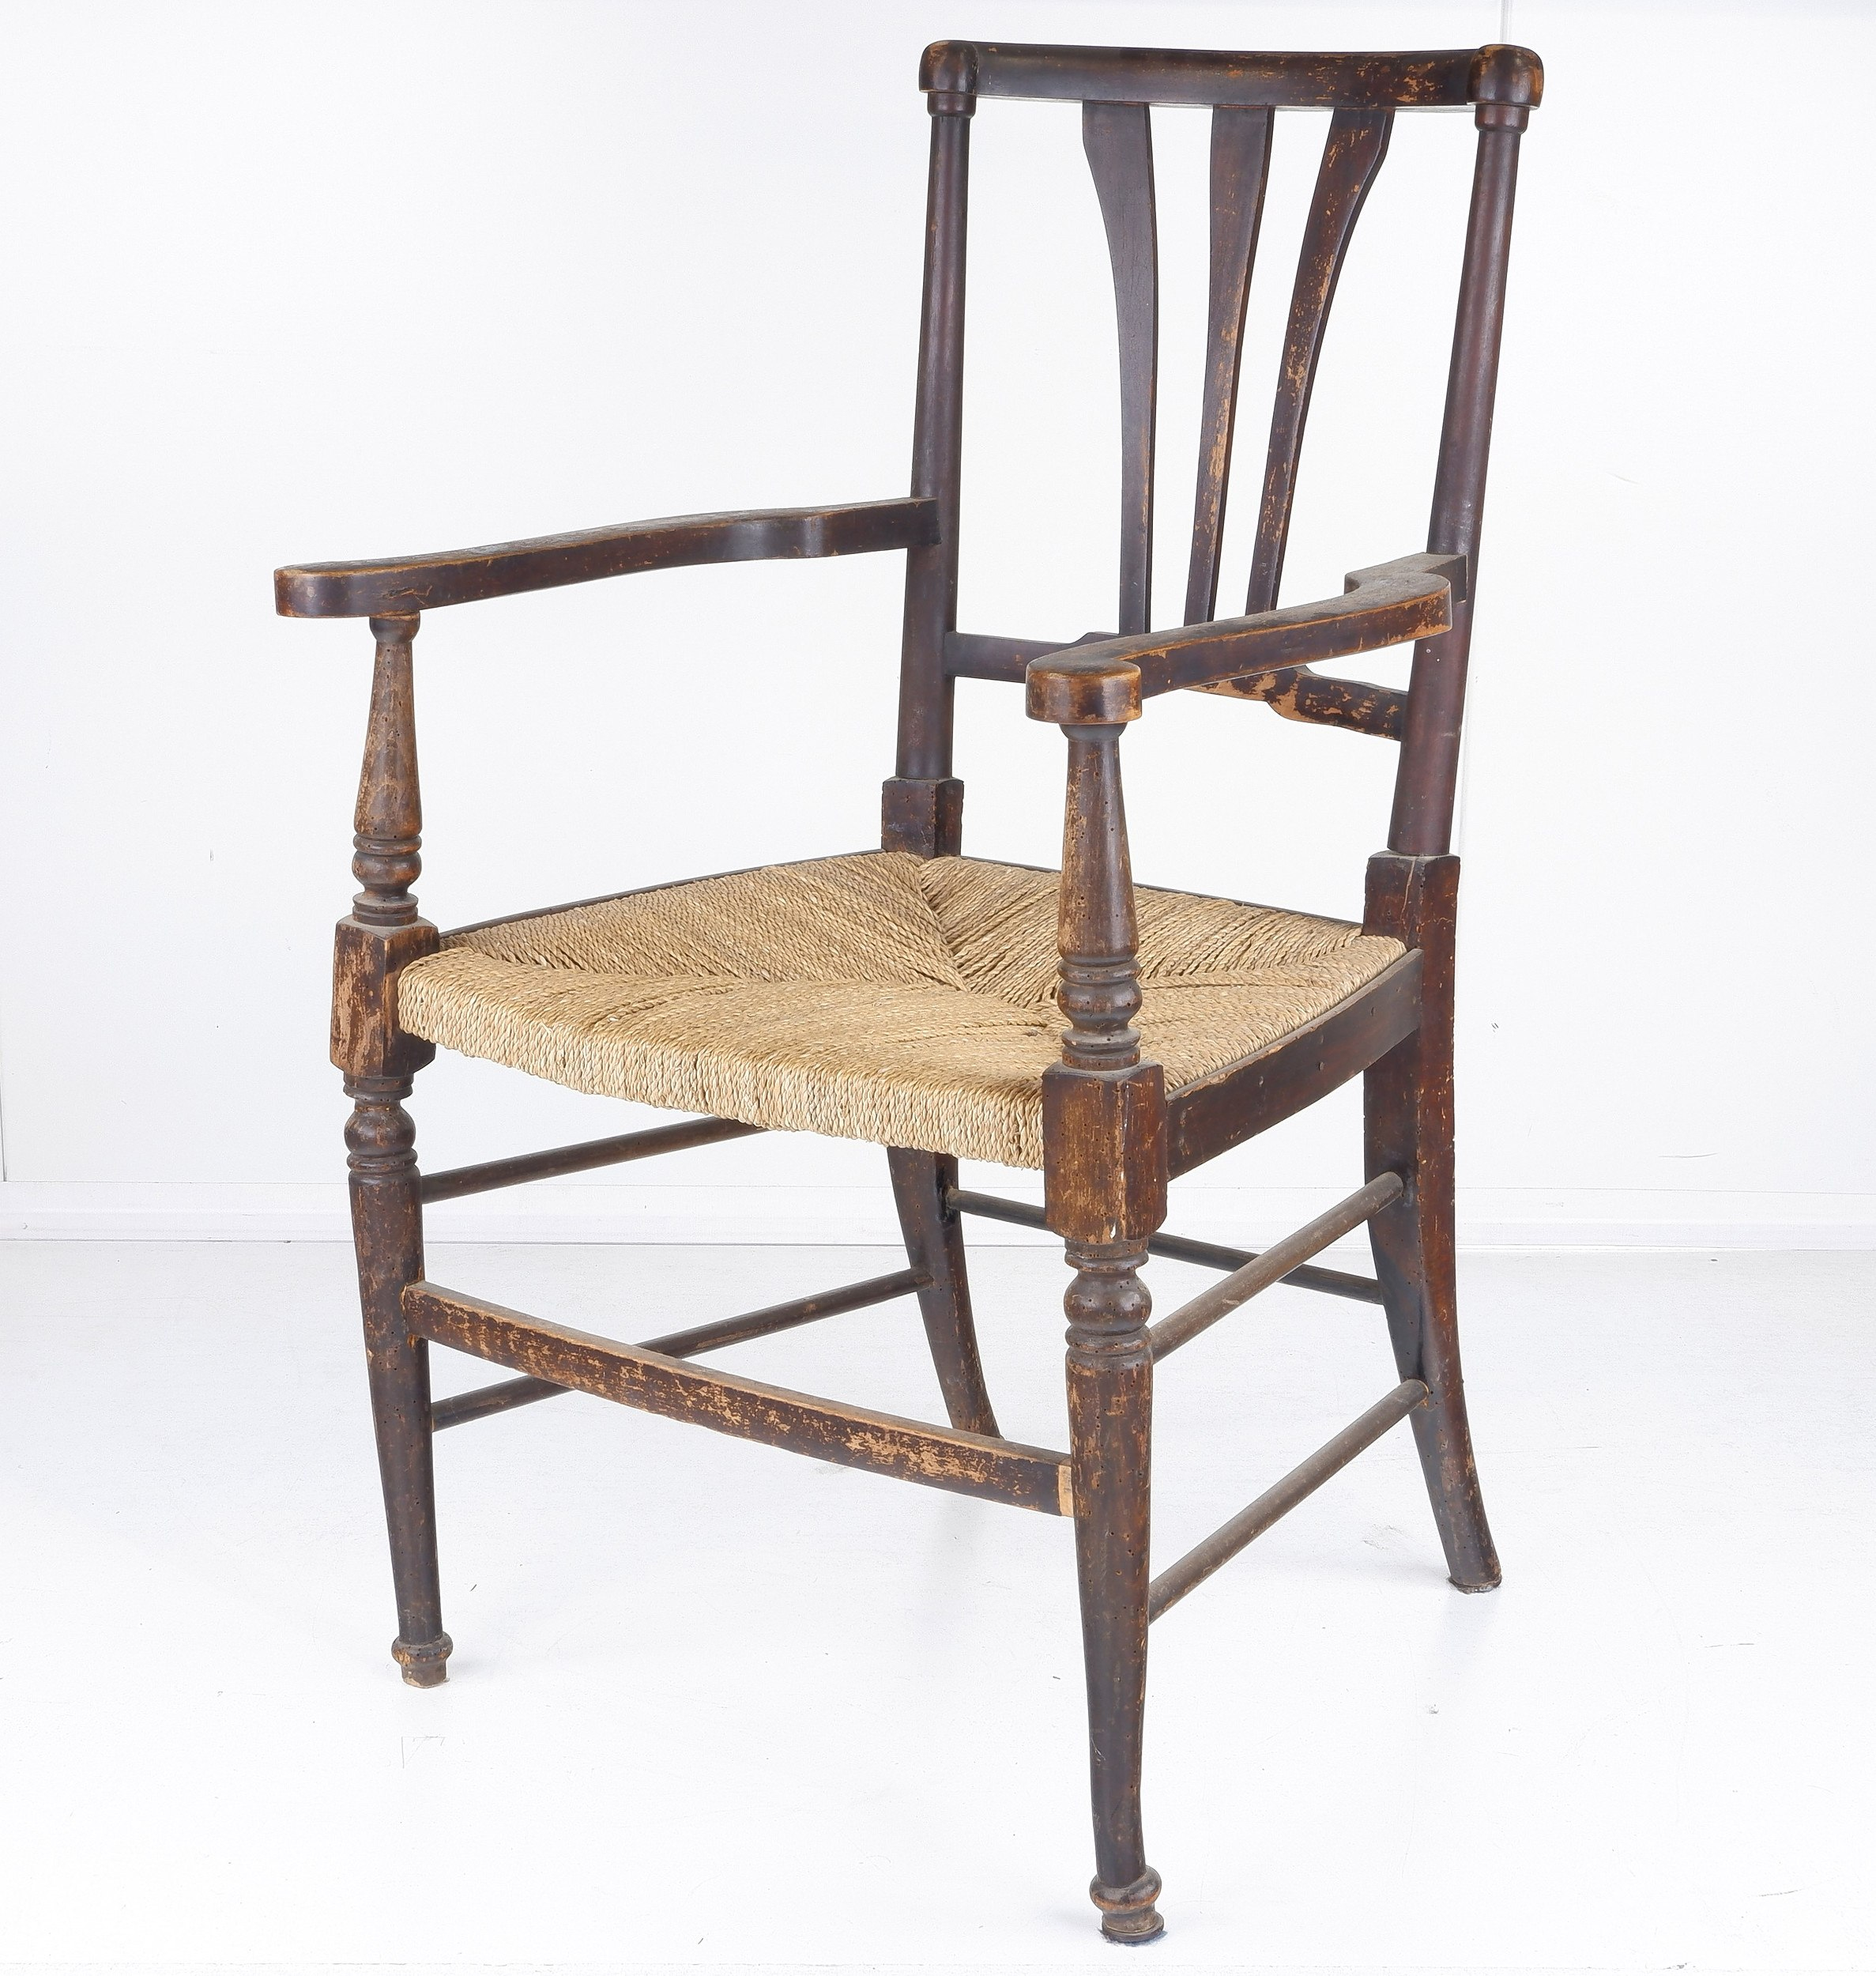 'English Arts and Crafts Style Dining Chair with Seagrass Seat Early 20th Century'